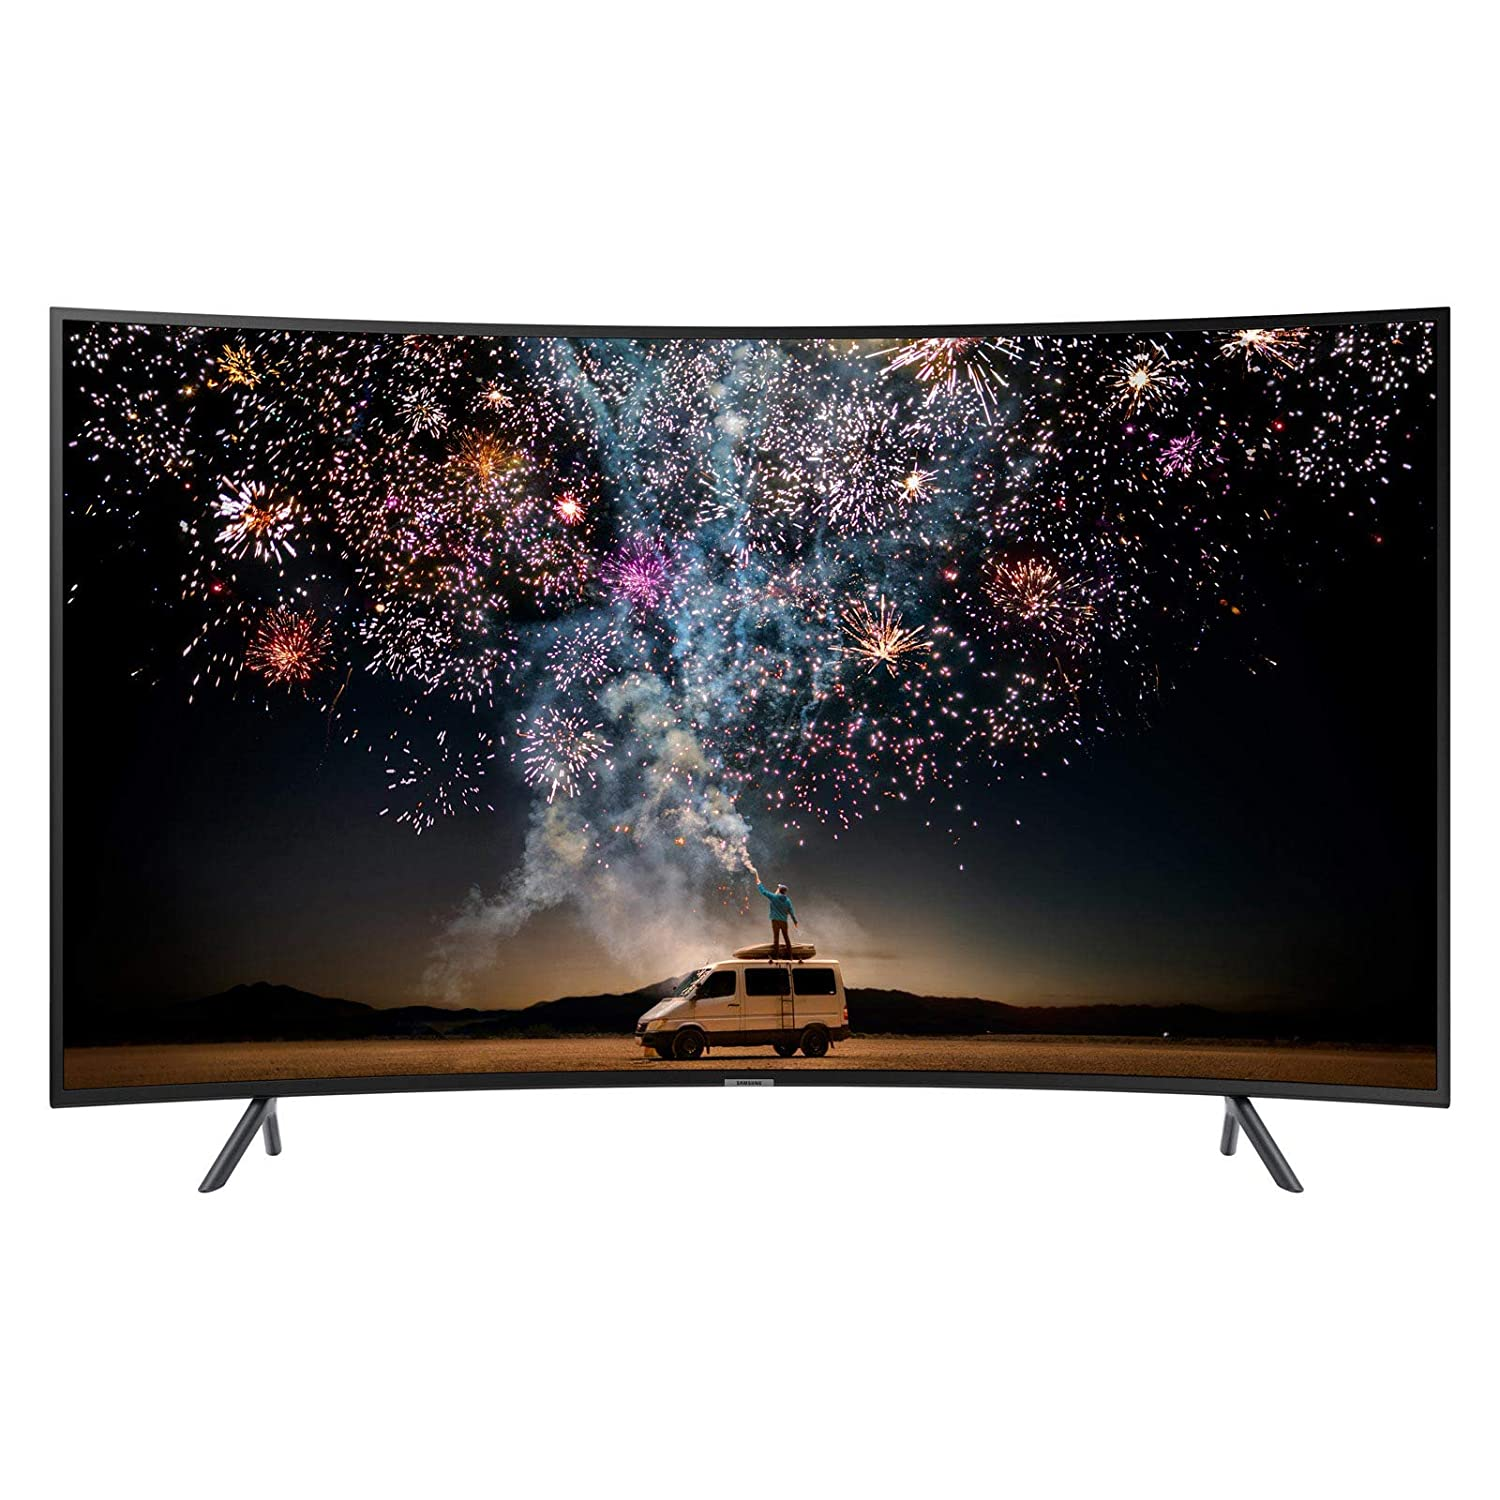 Samsung 55 Inch Curved Smart 4K UHD TV  - Series 7